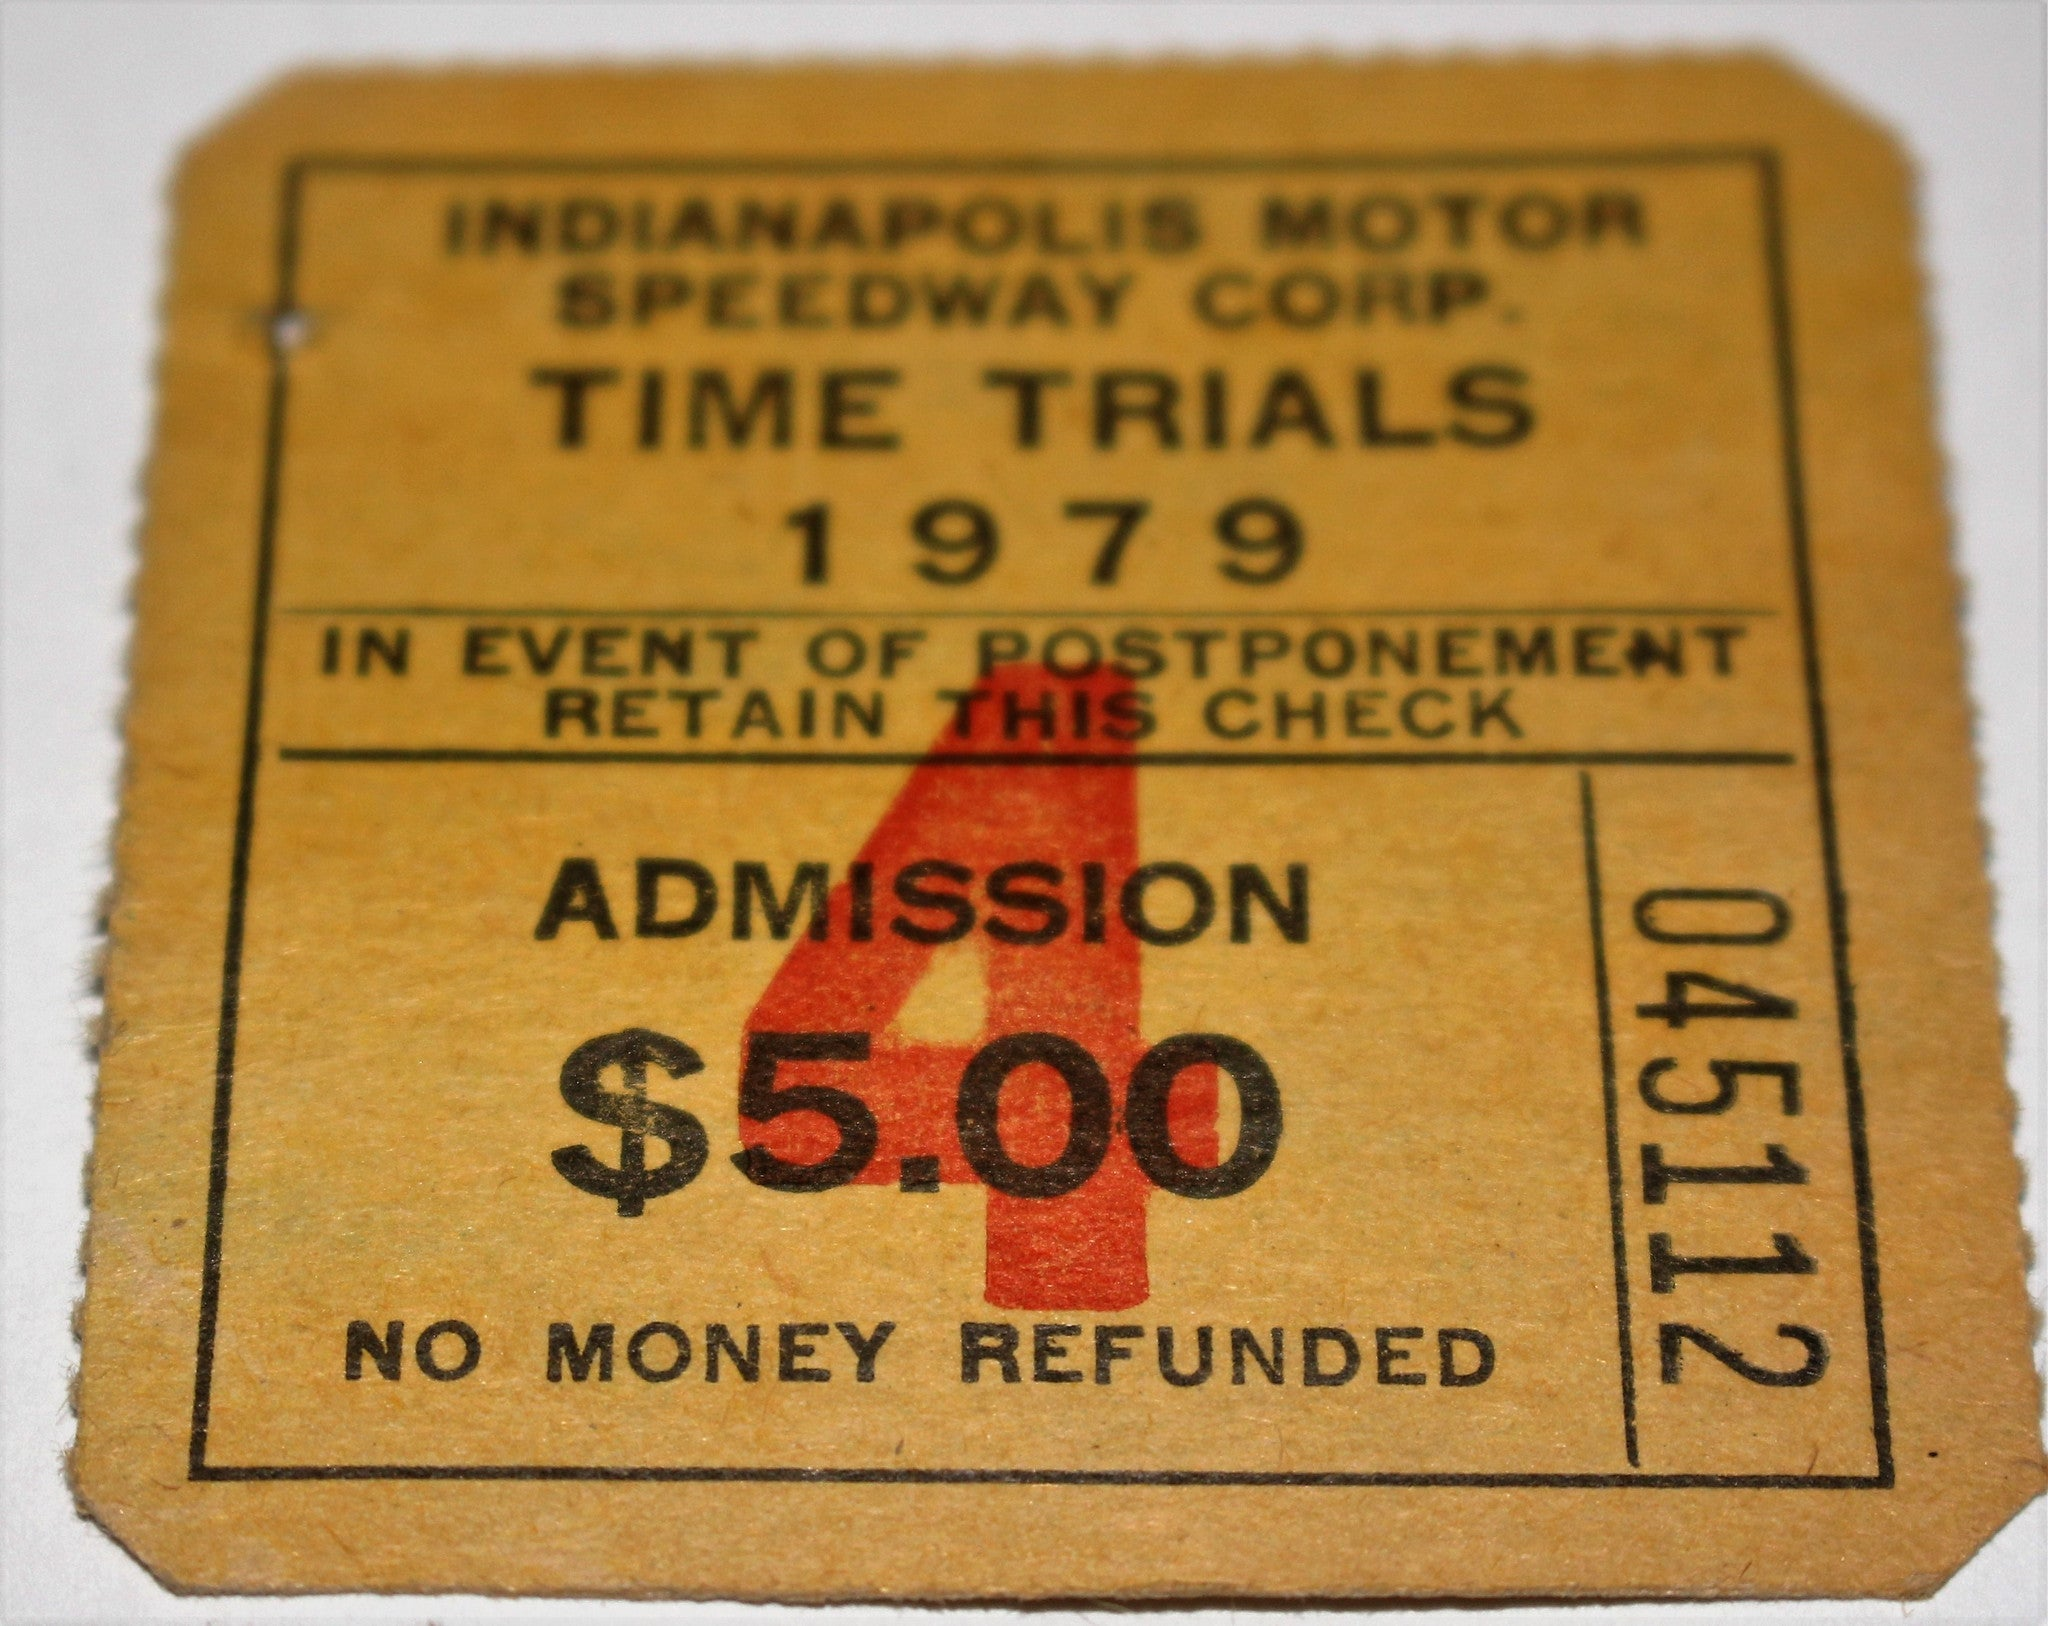 1979 Indianapolis 500 Time Trials Ticket - Vintage Indy Sports